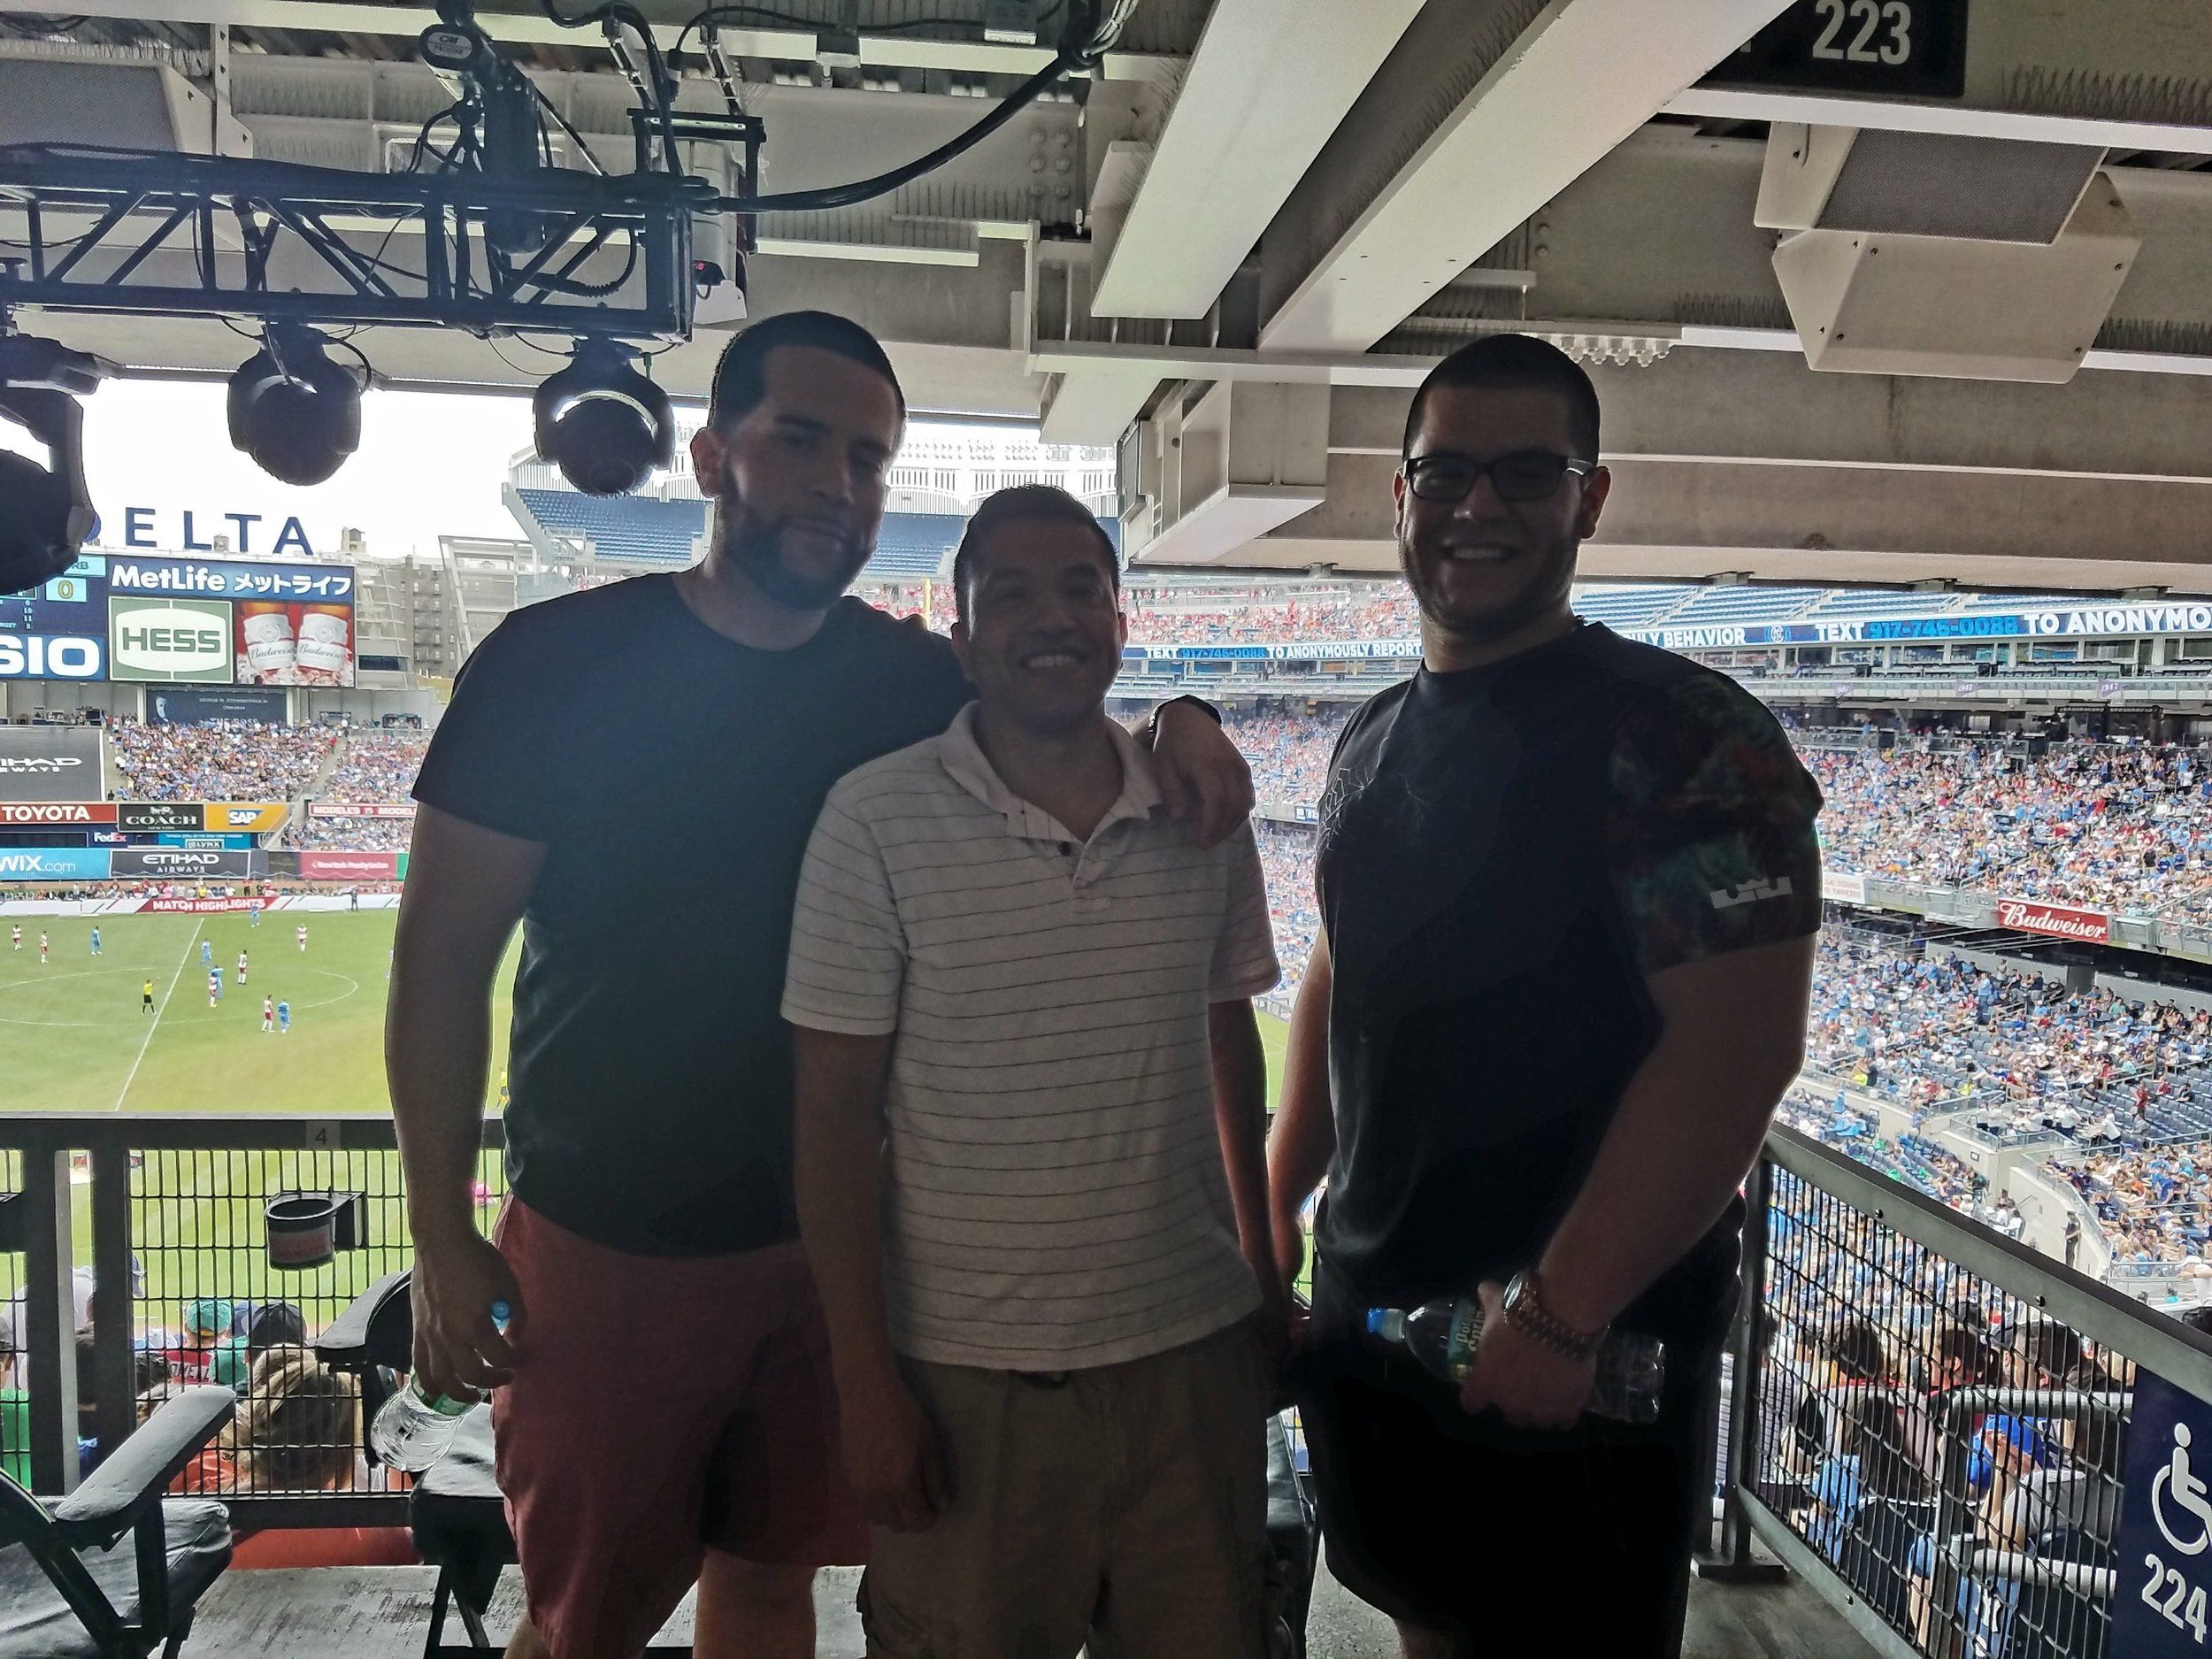 """"""" Thank you so much! Great seats and had a great time with my family watching the game! Very good game as well."""" - US Marine Corps Serviceman"""